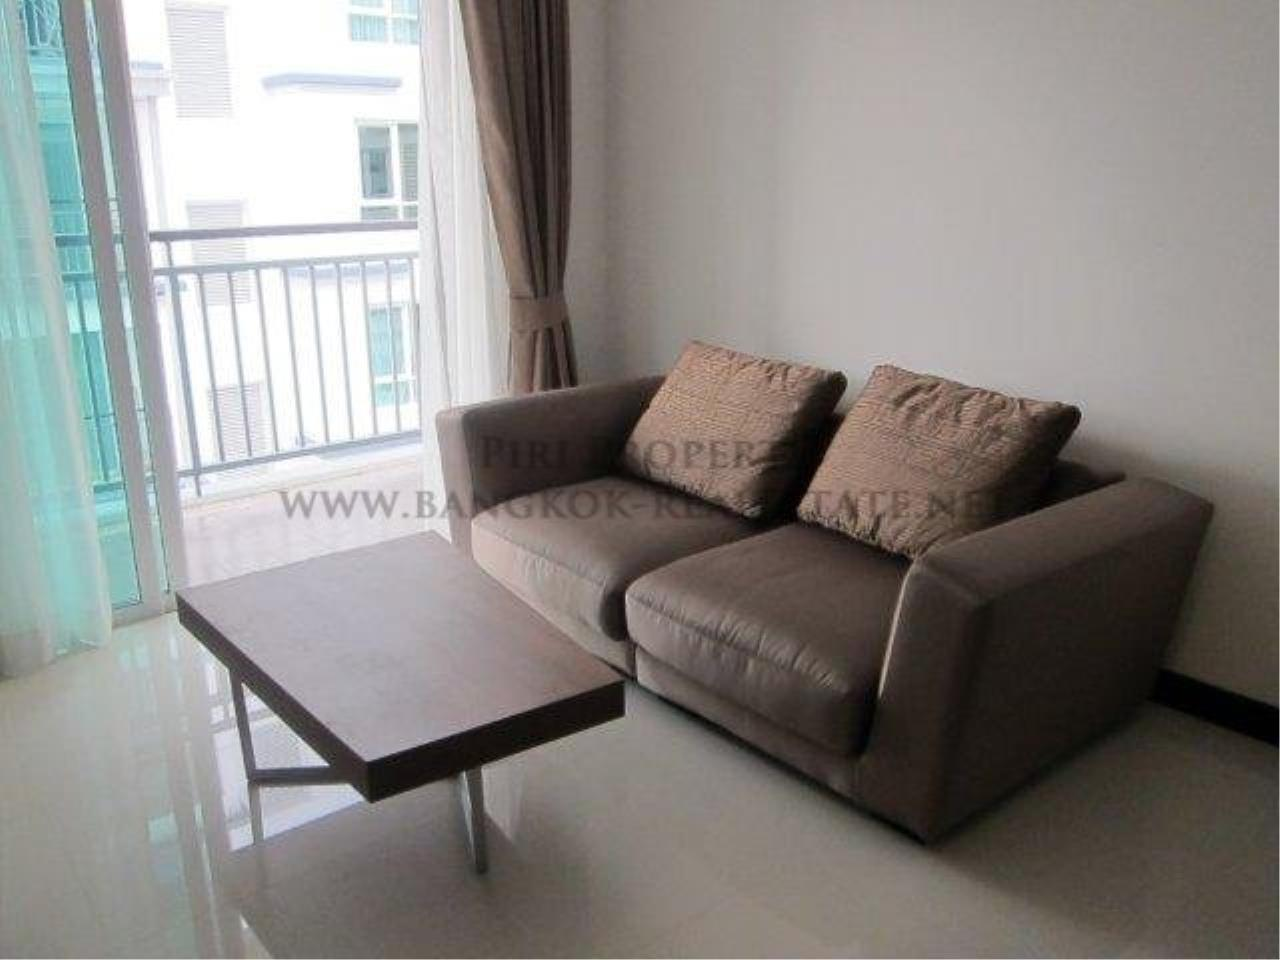 Piri Property Agency's 2 Bedroom Condo in Asoke - Voque 16 for Rent - Free Shuttle to BTS 1